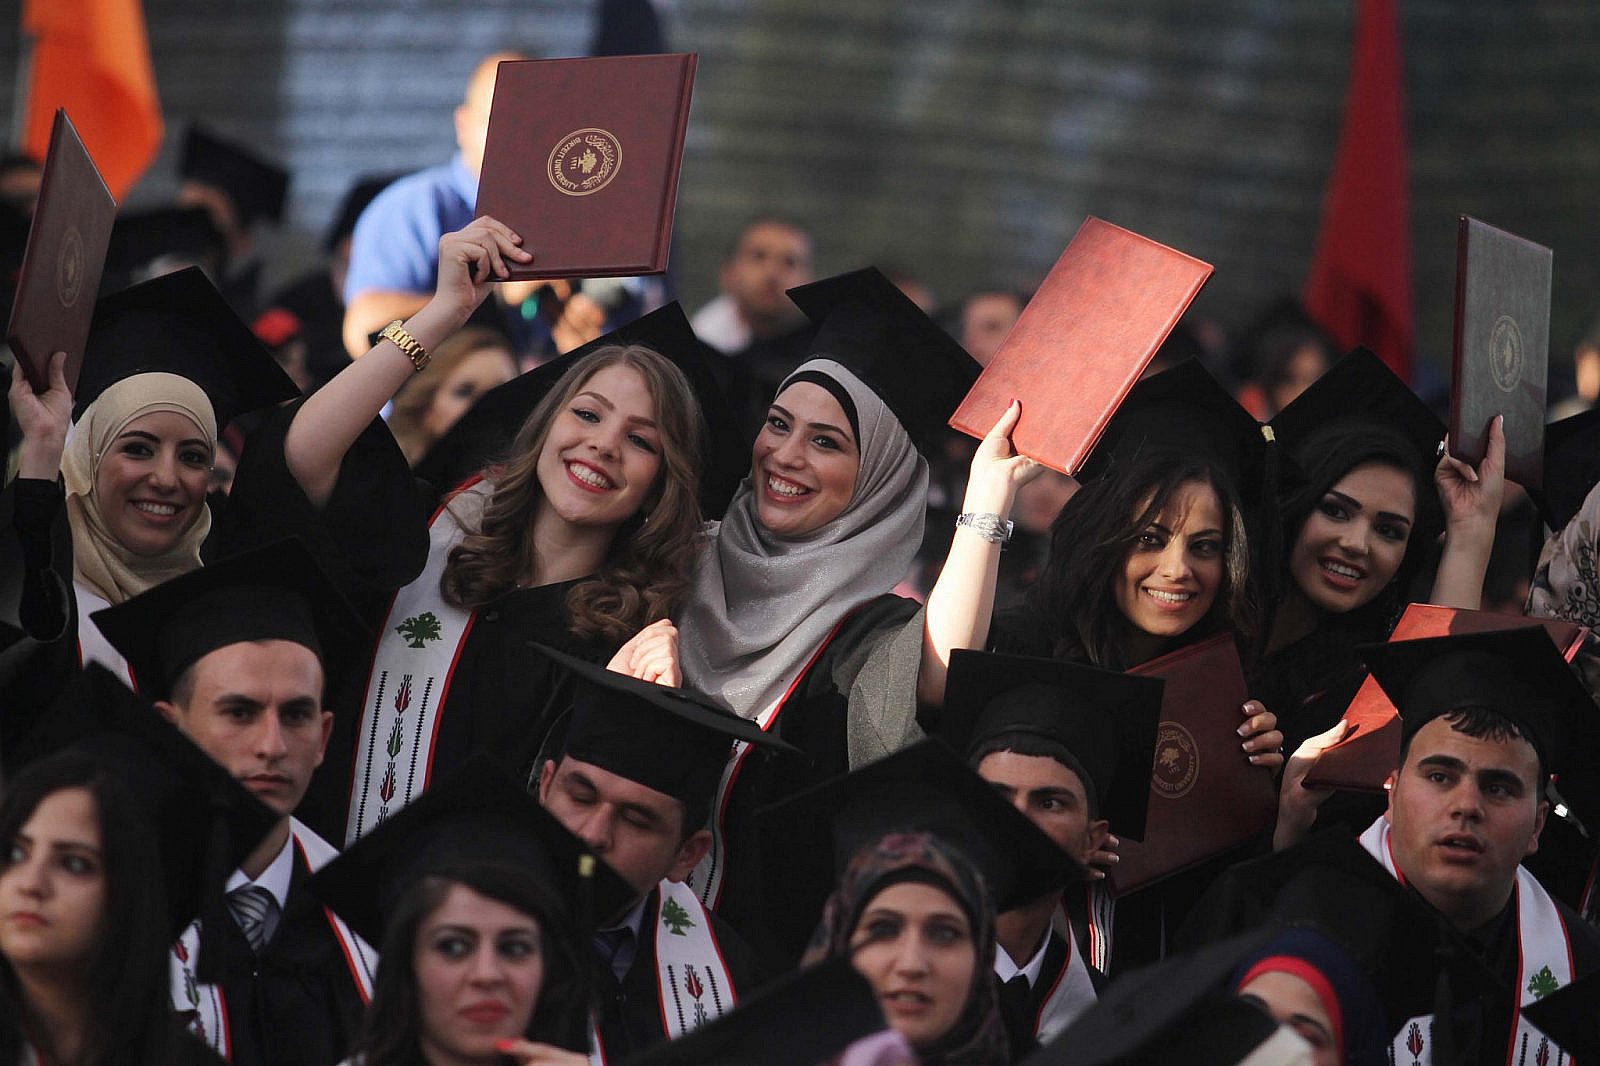 Palestinian students attend their graduation ceremony at the Birzeit University near the West Bank city of Ramallah, June 16, 2013. (Issam Rimawi/Flash90)